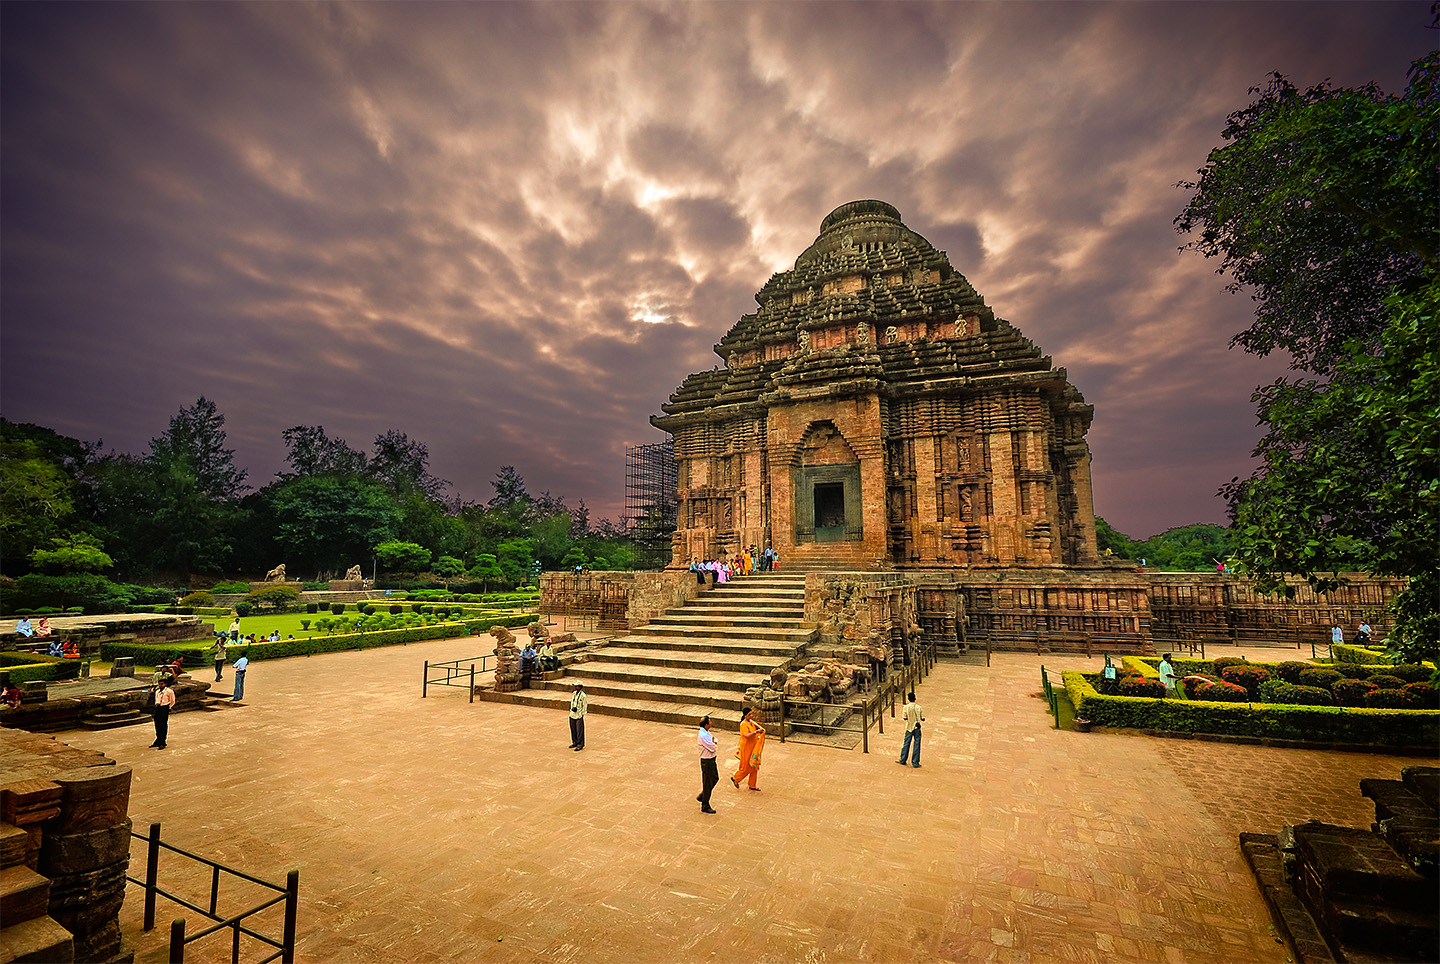 konark sun temple famous hindu temple in india